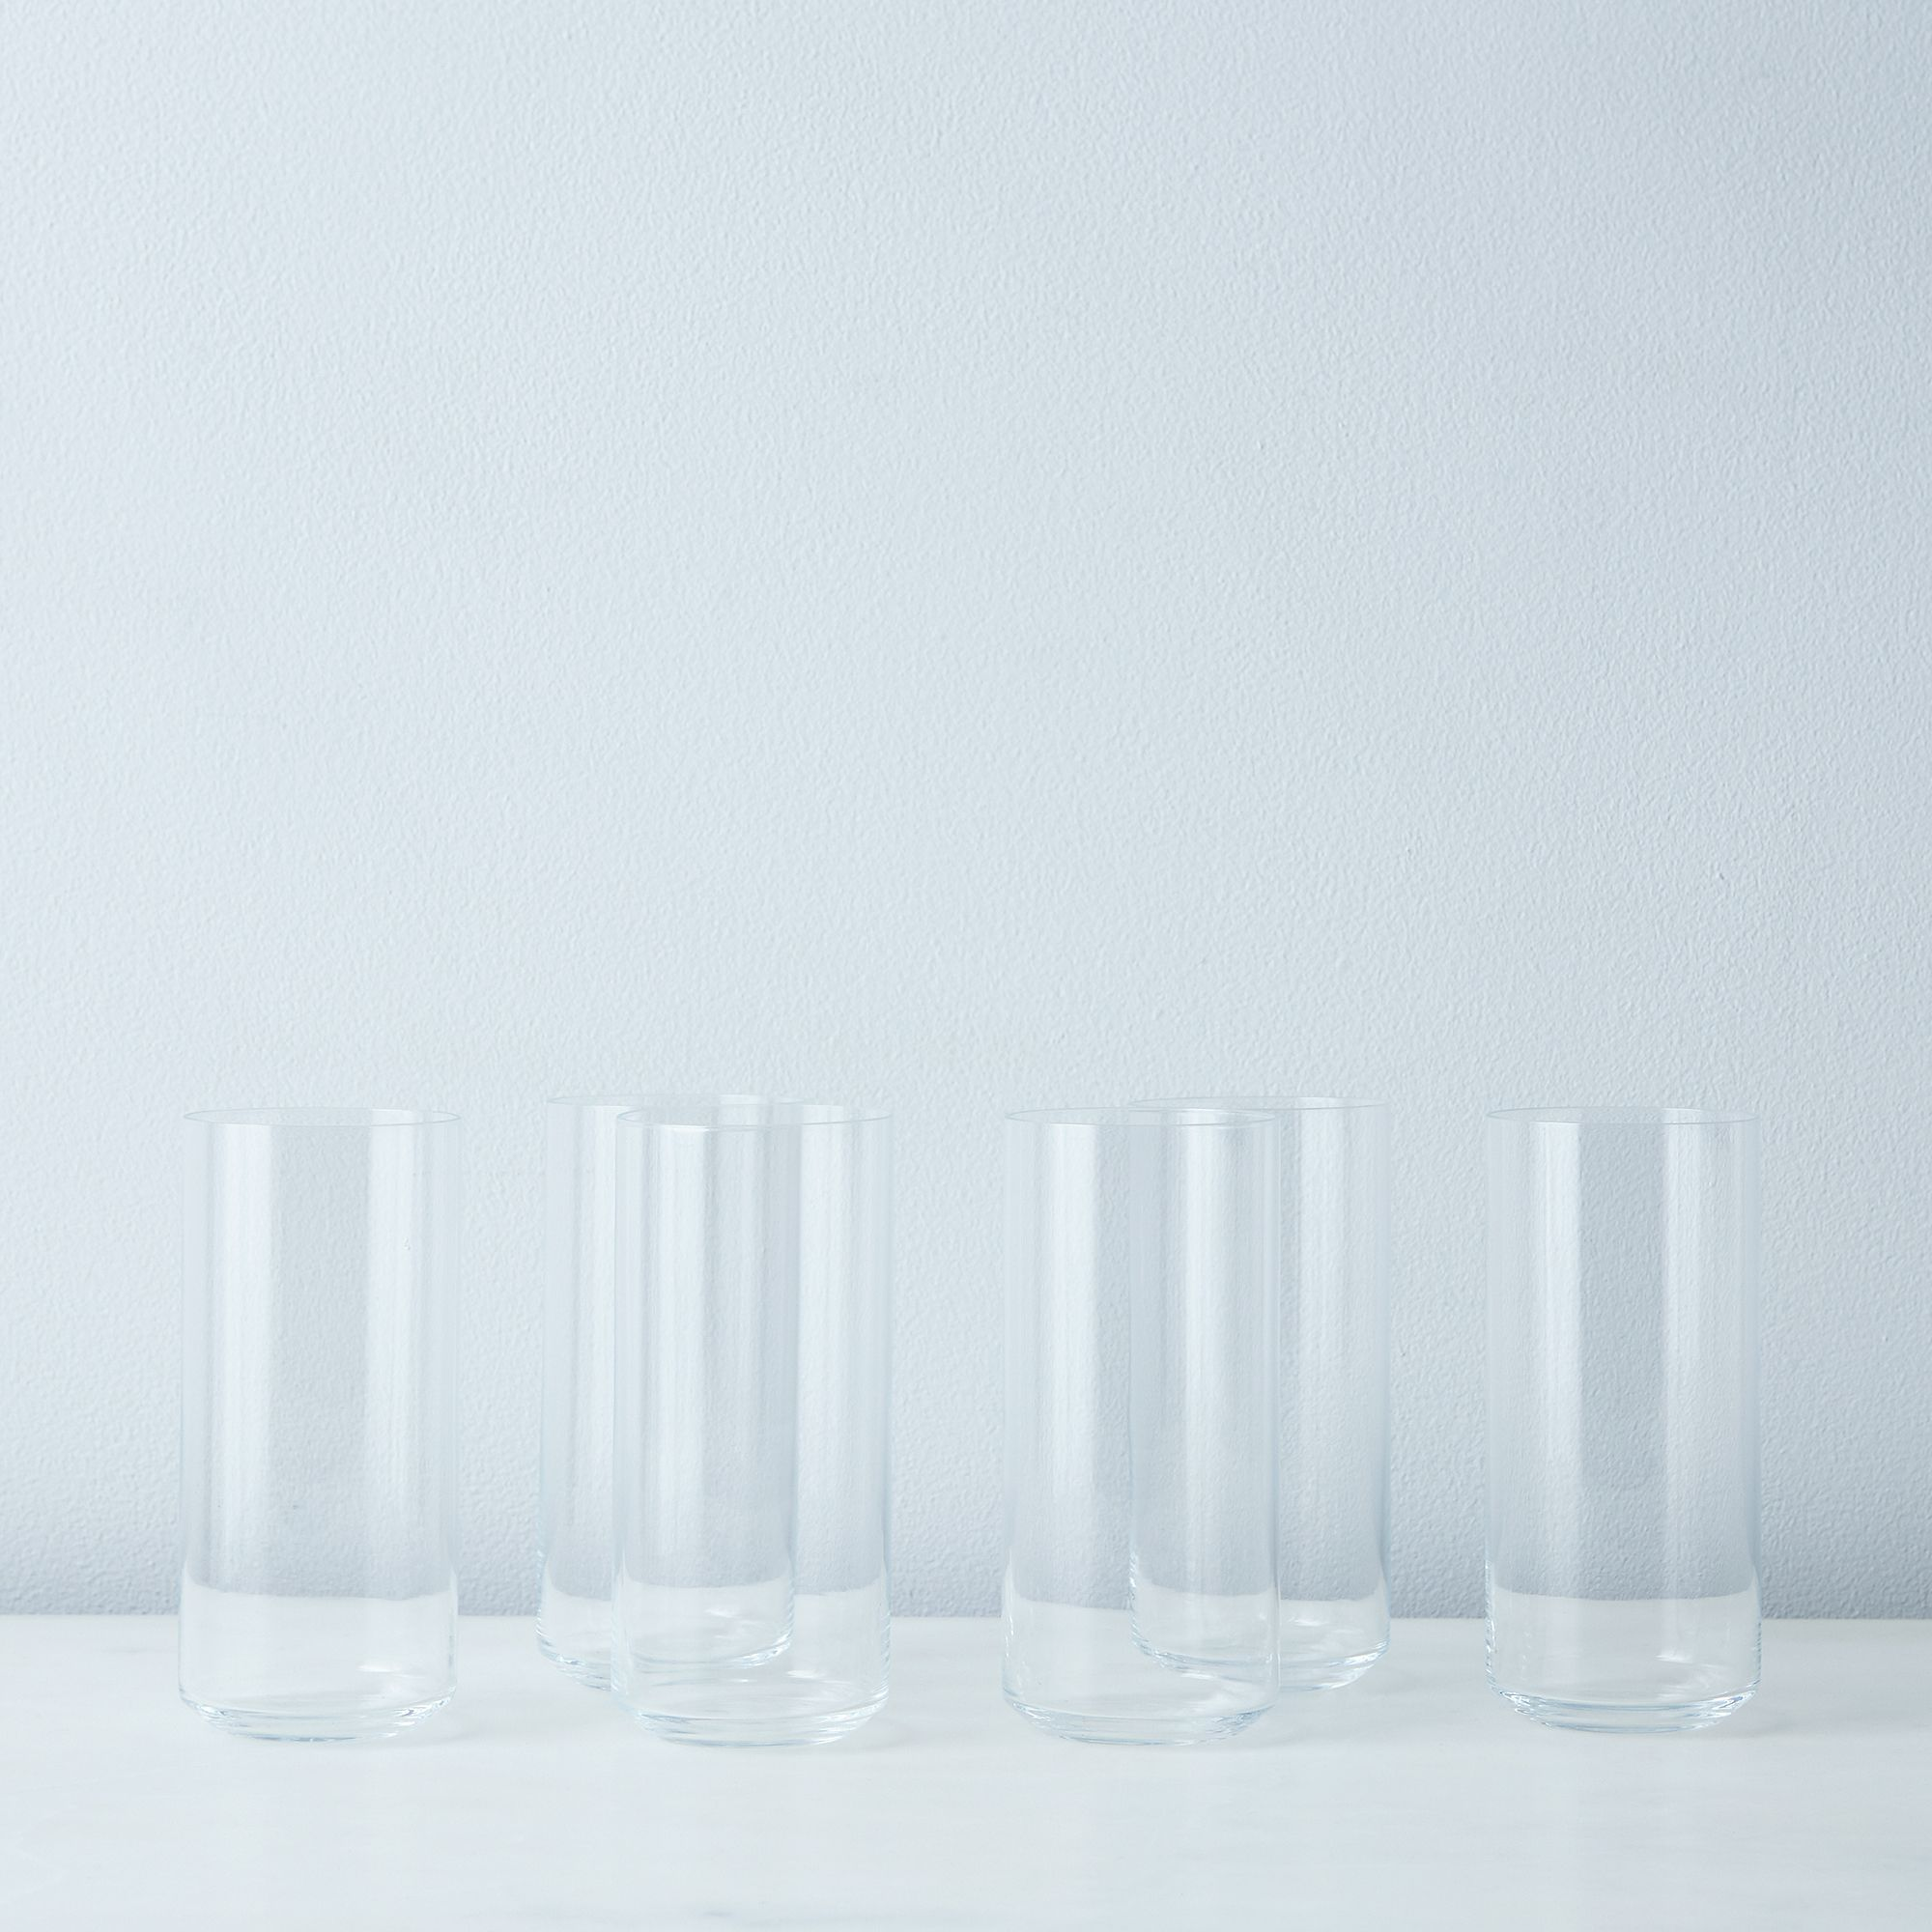 11c90a82 0e48 4578 b84a 749cb6099dc7  2016 0601 hawkins new york simple glassware tall set of 6 silo rocky luten 006